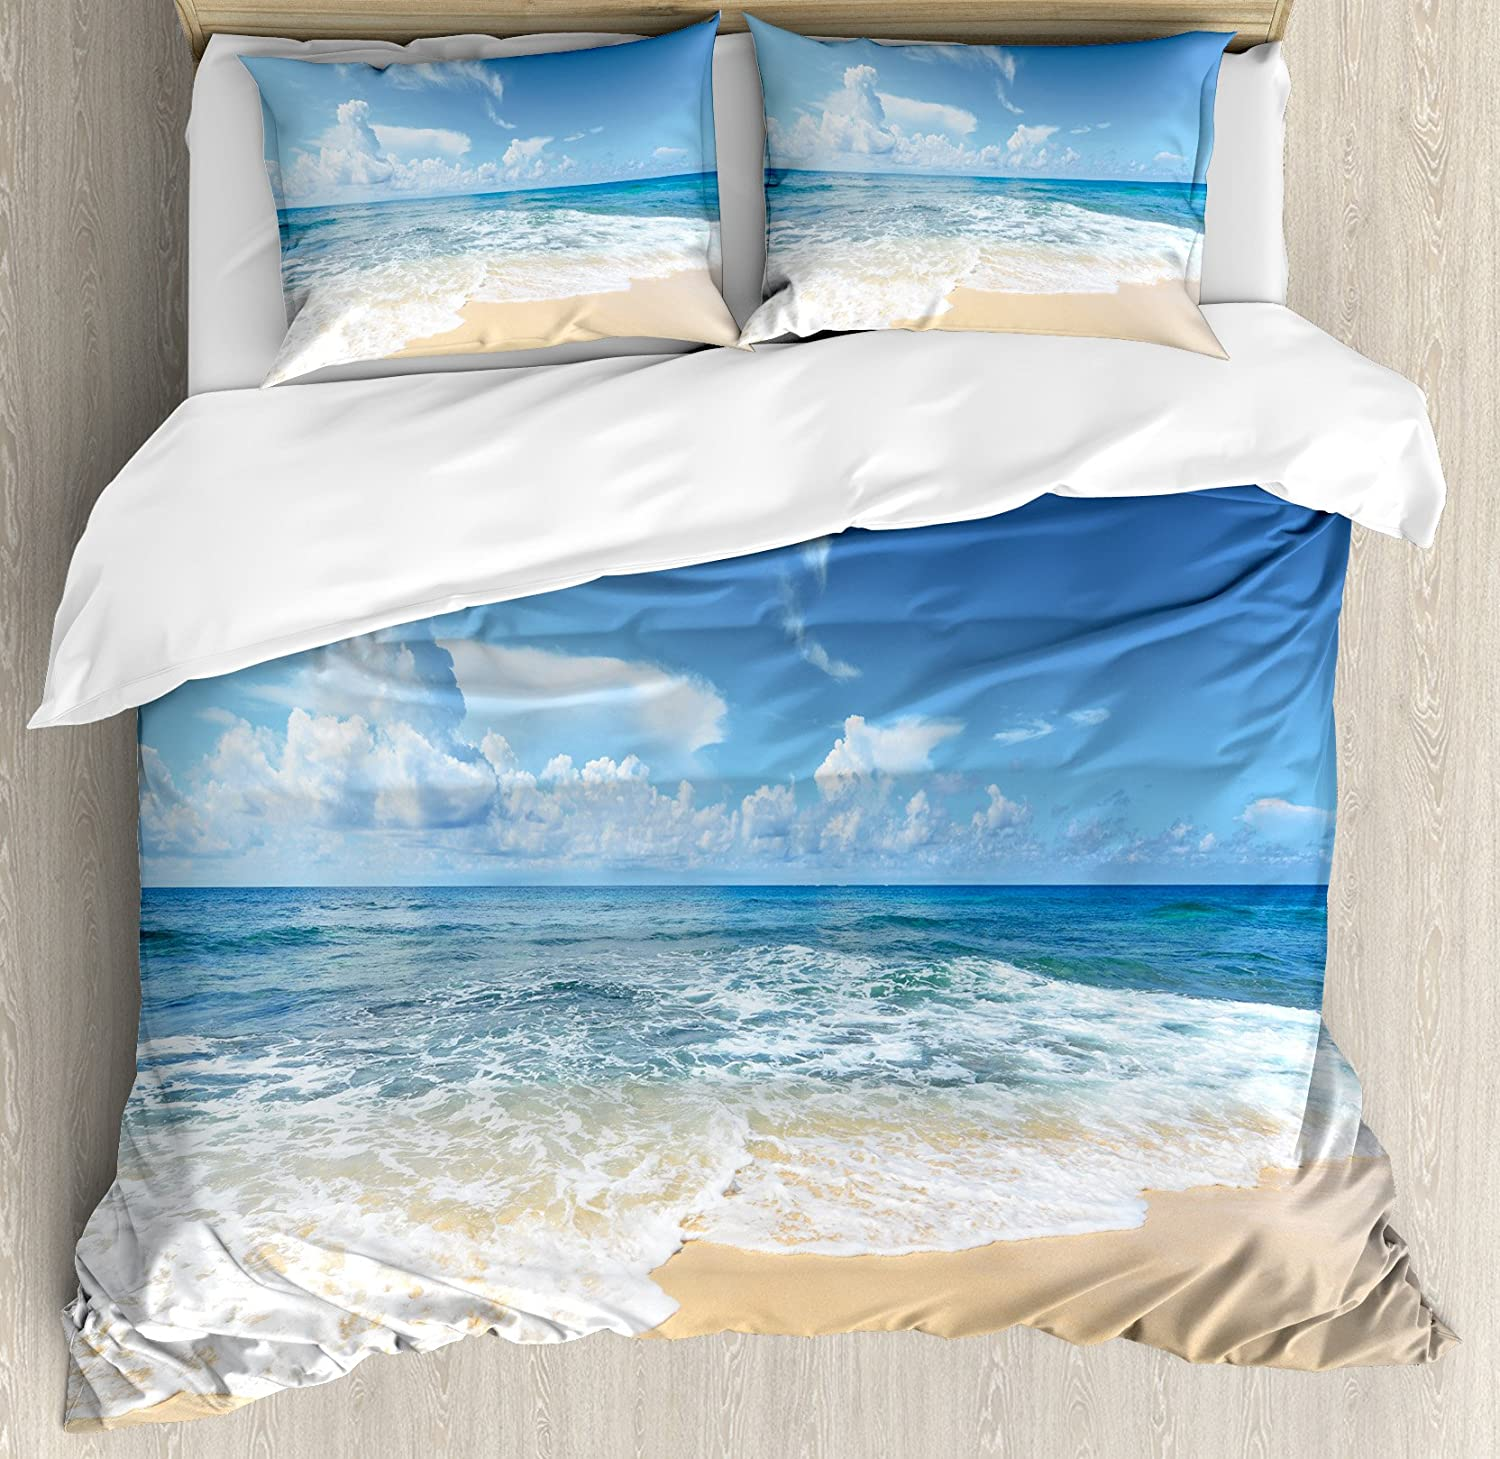 Ambesonne Ocean Duvet Cover Genuine Set Waves S with Beach Paradise and Super sale period limited